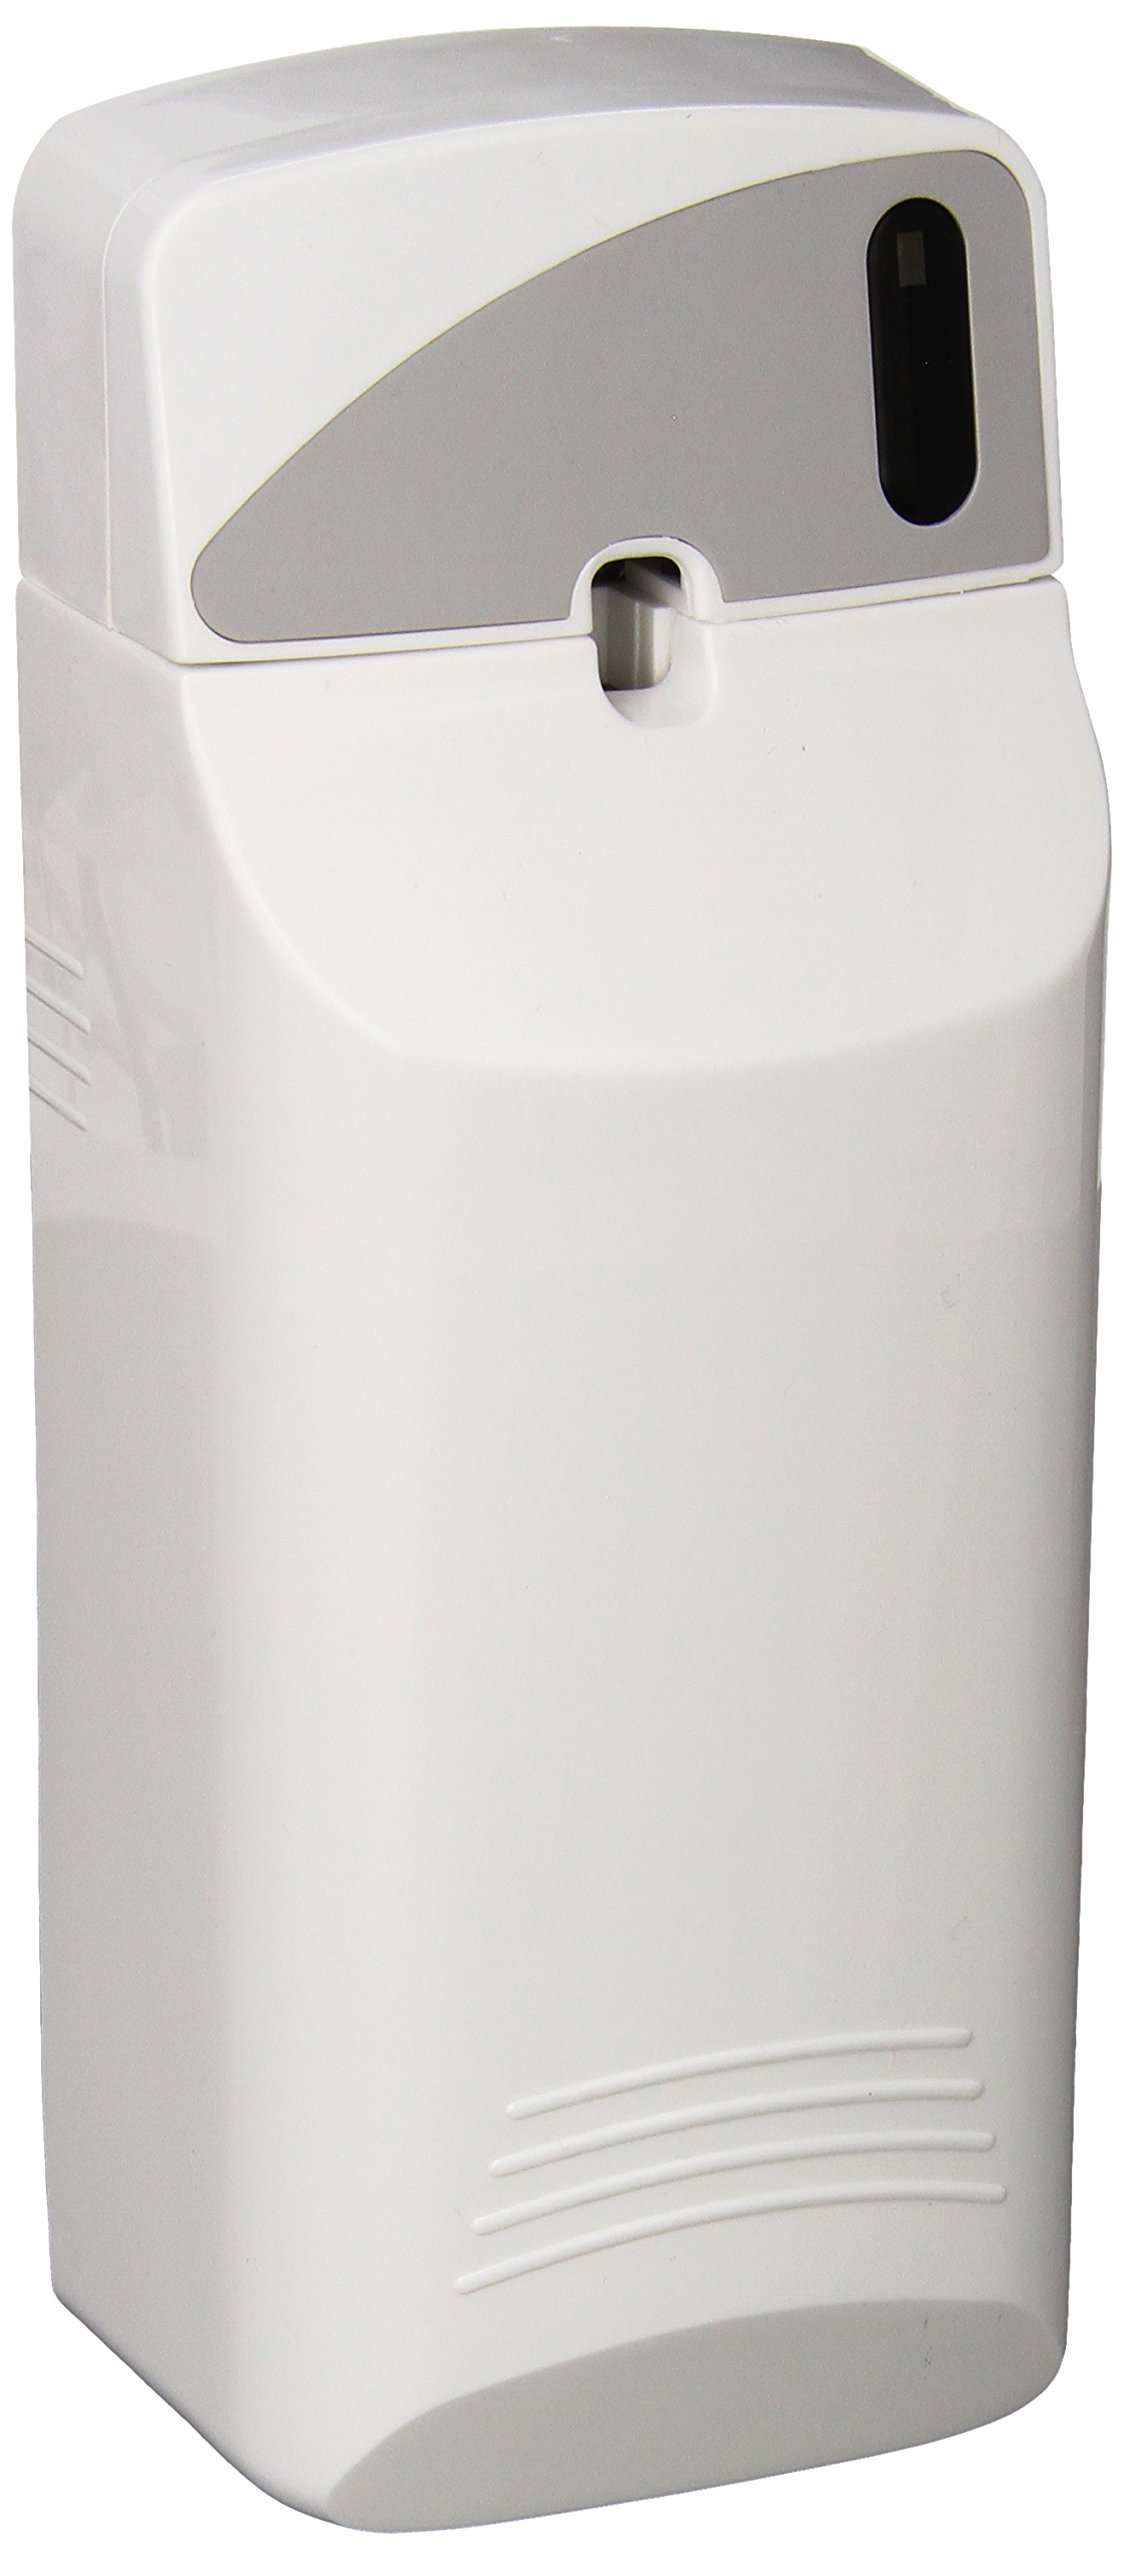 Rubbermaid Commercial 401375 Microburst 9000 Aerosol Odor Control Economizer Dispenser, White by Rubbermaid Commercial Products (Image #2)